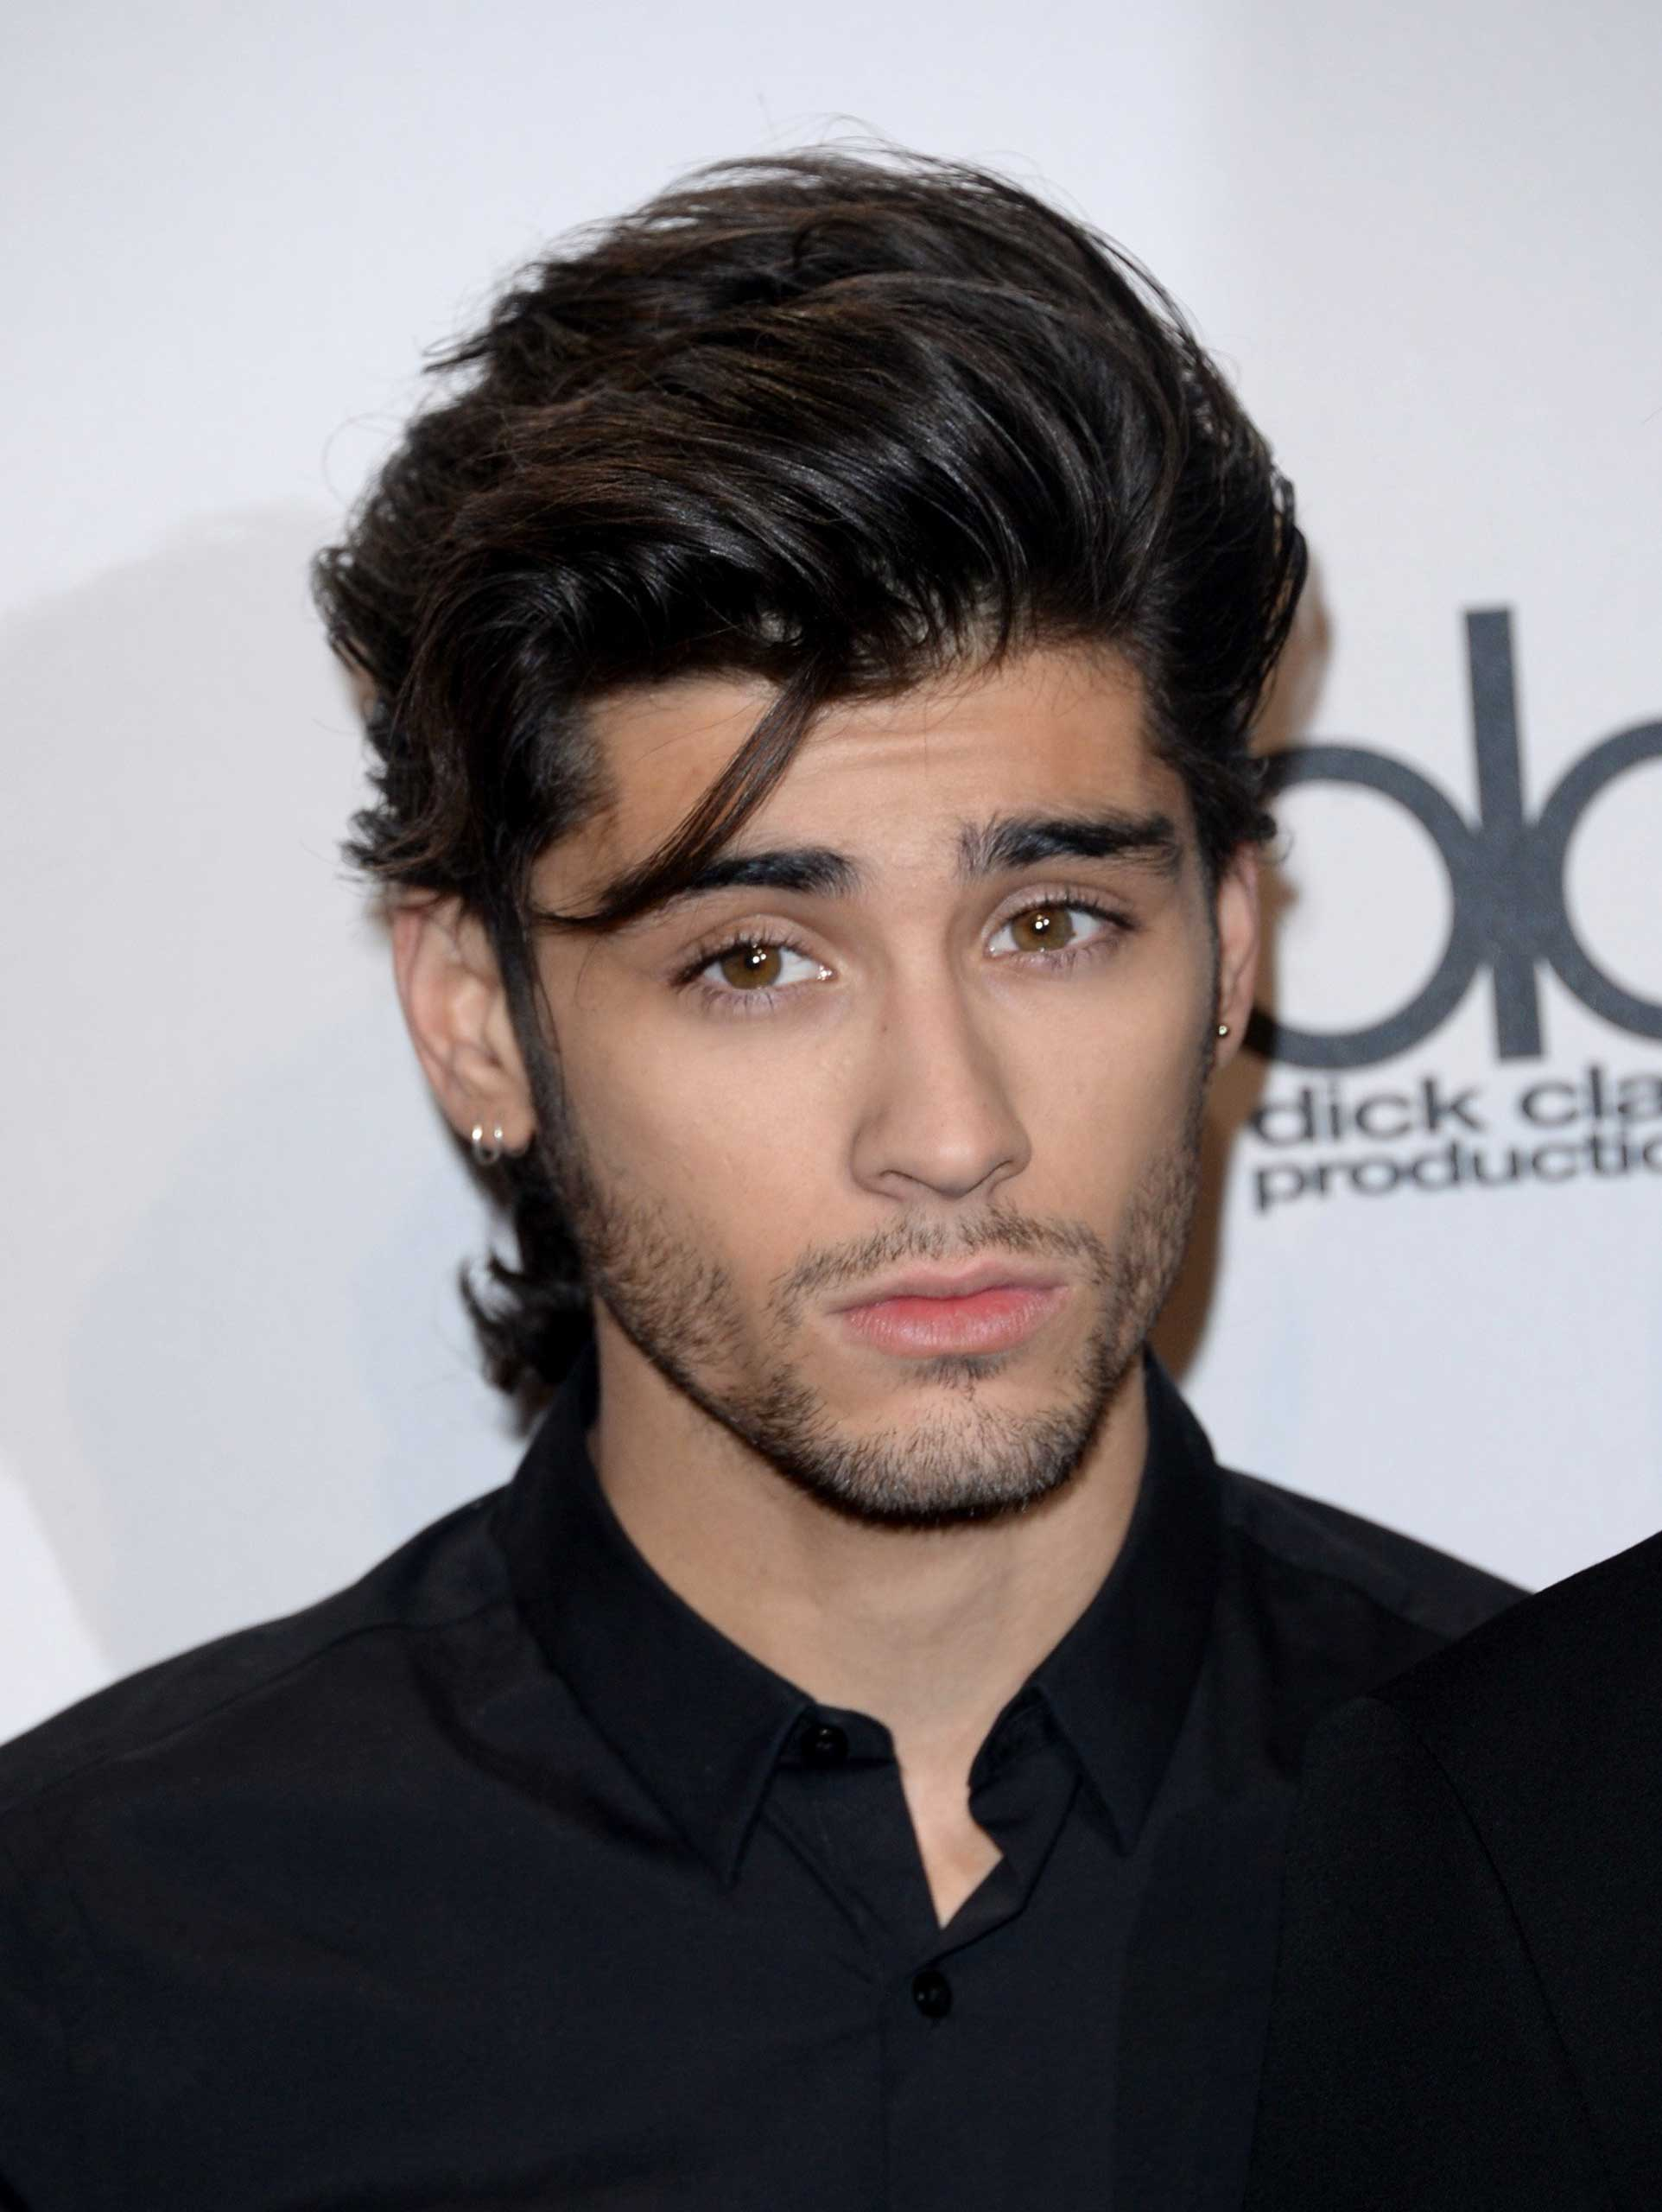 Singer Zayn Malik of One Direction at the 2014 American Music Awards at Nokia Theatre in Los Angeles on Nov. 23, 2014.